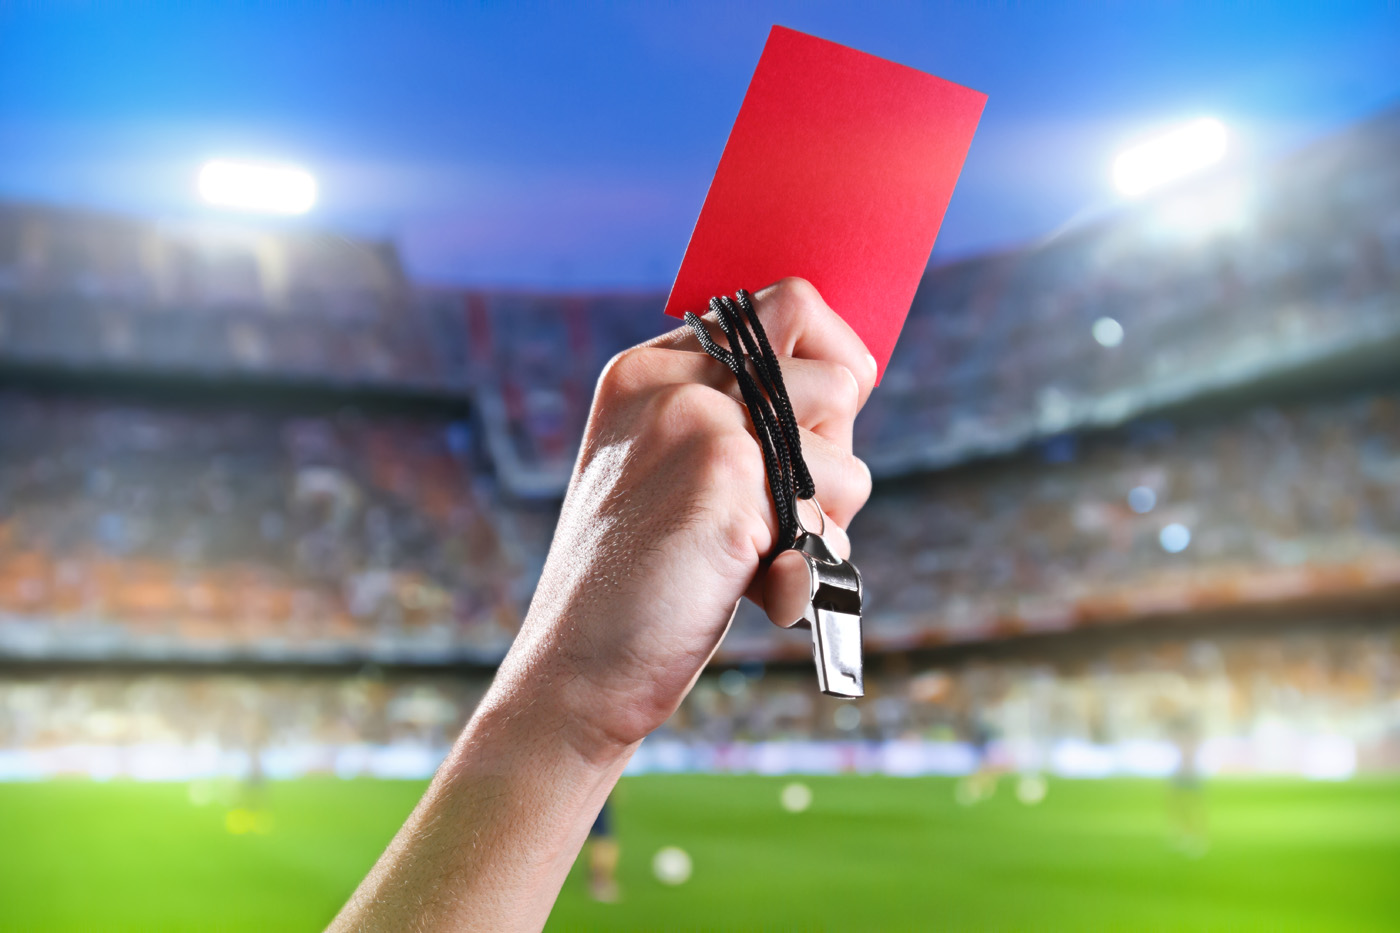 The referee in red card gesture 50896